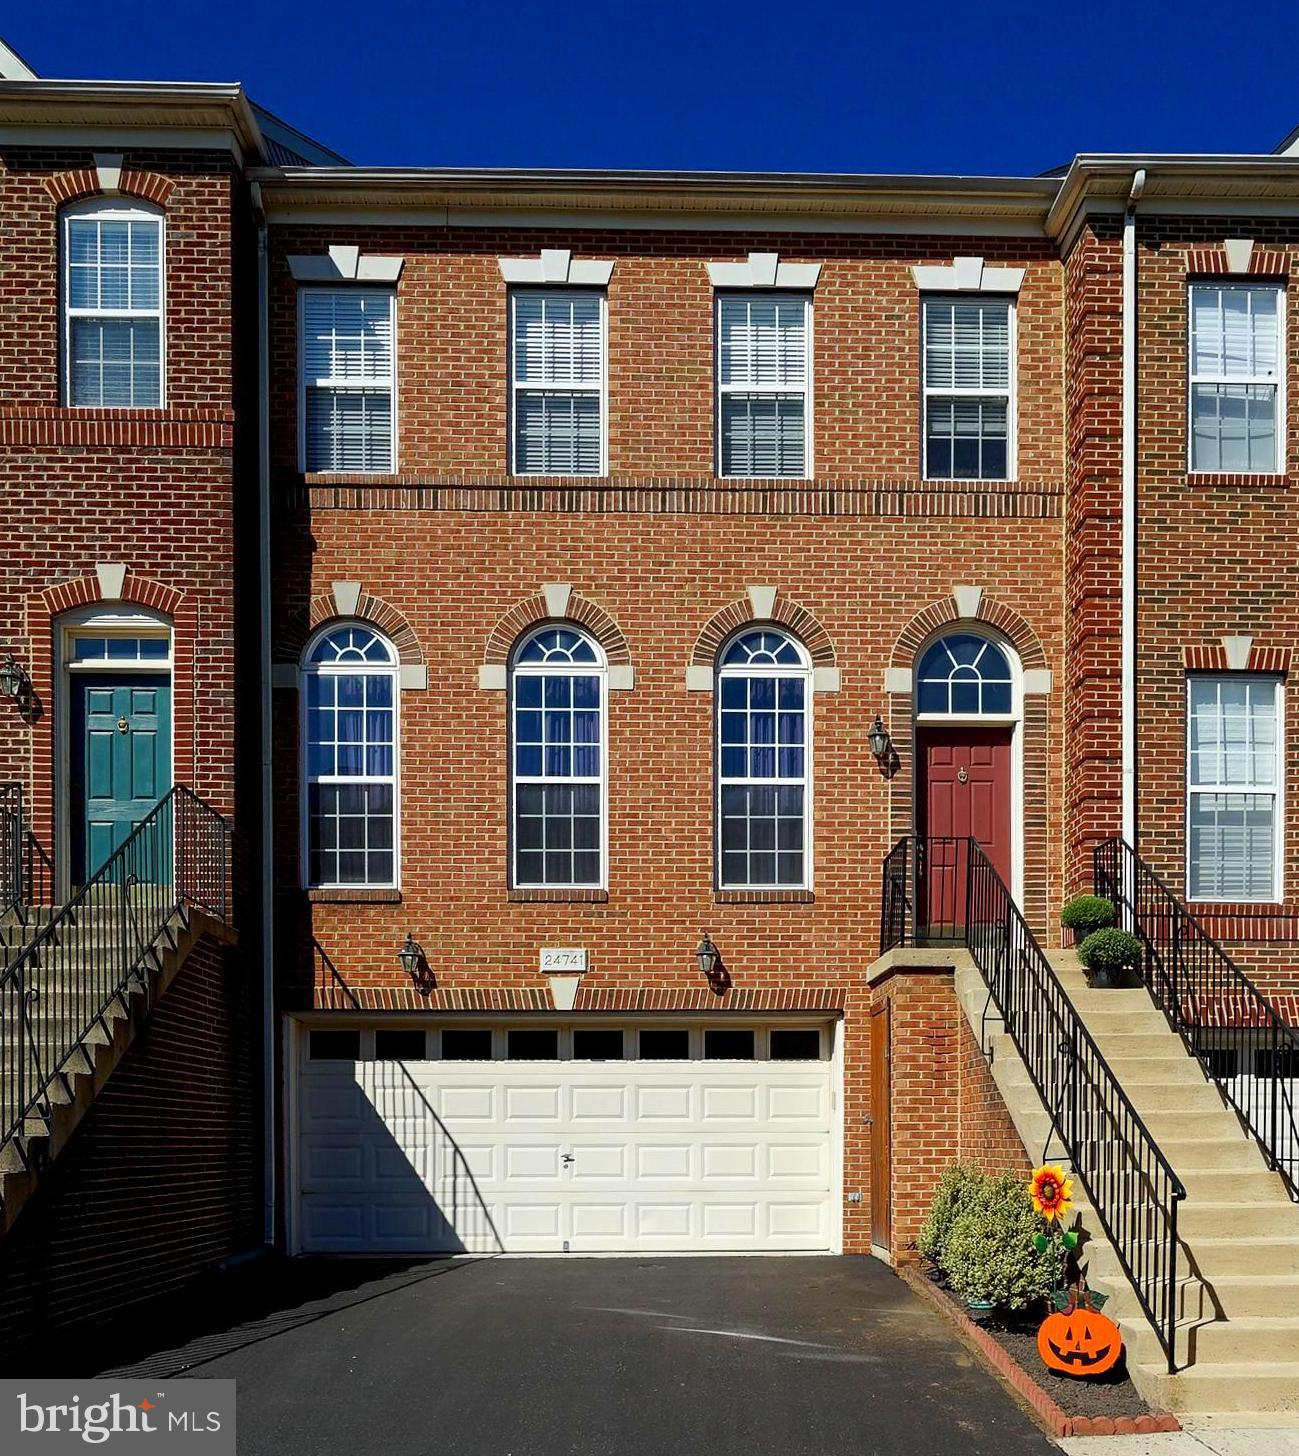 Beautiful 3-bedroom 3.5-bathroom townhouse with a two-car garage located in the sought-after Stone R